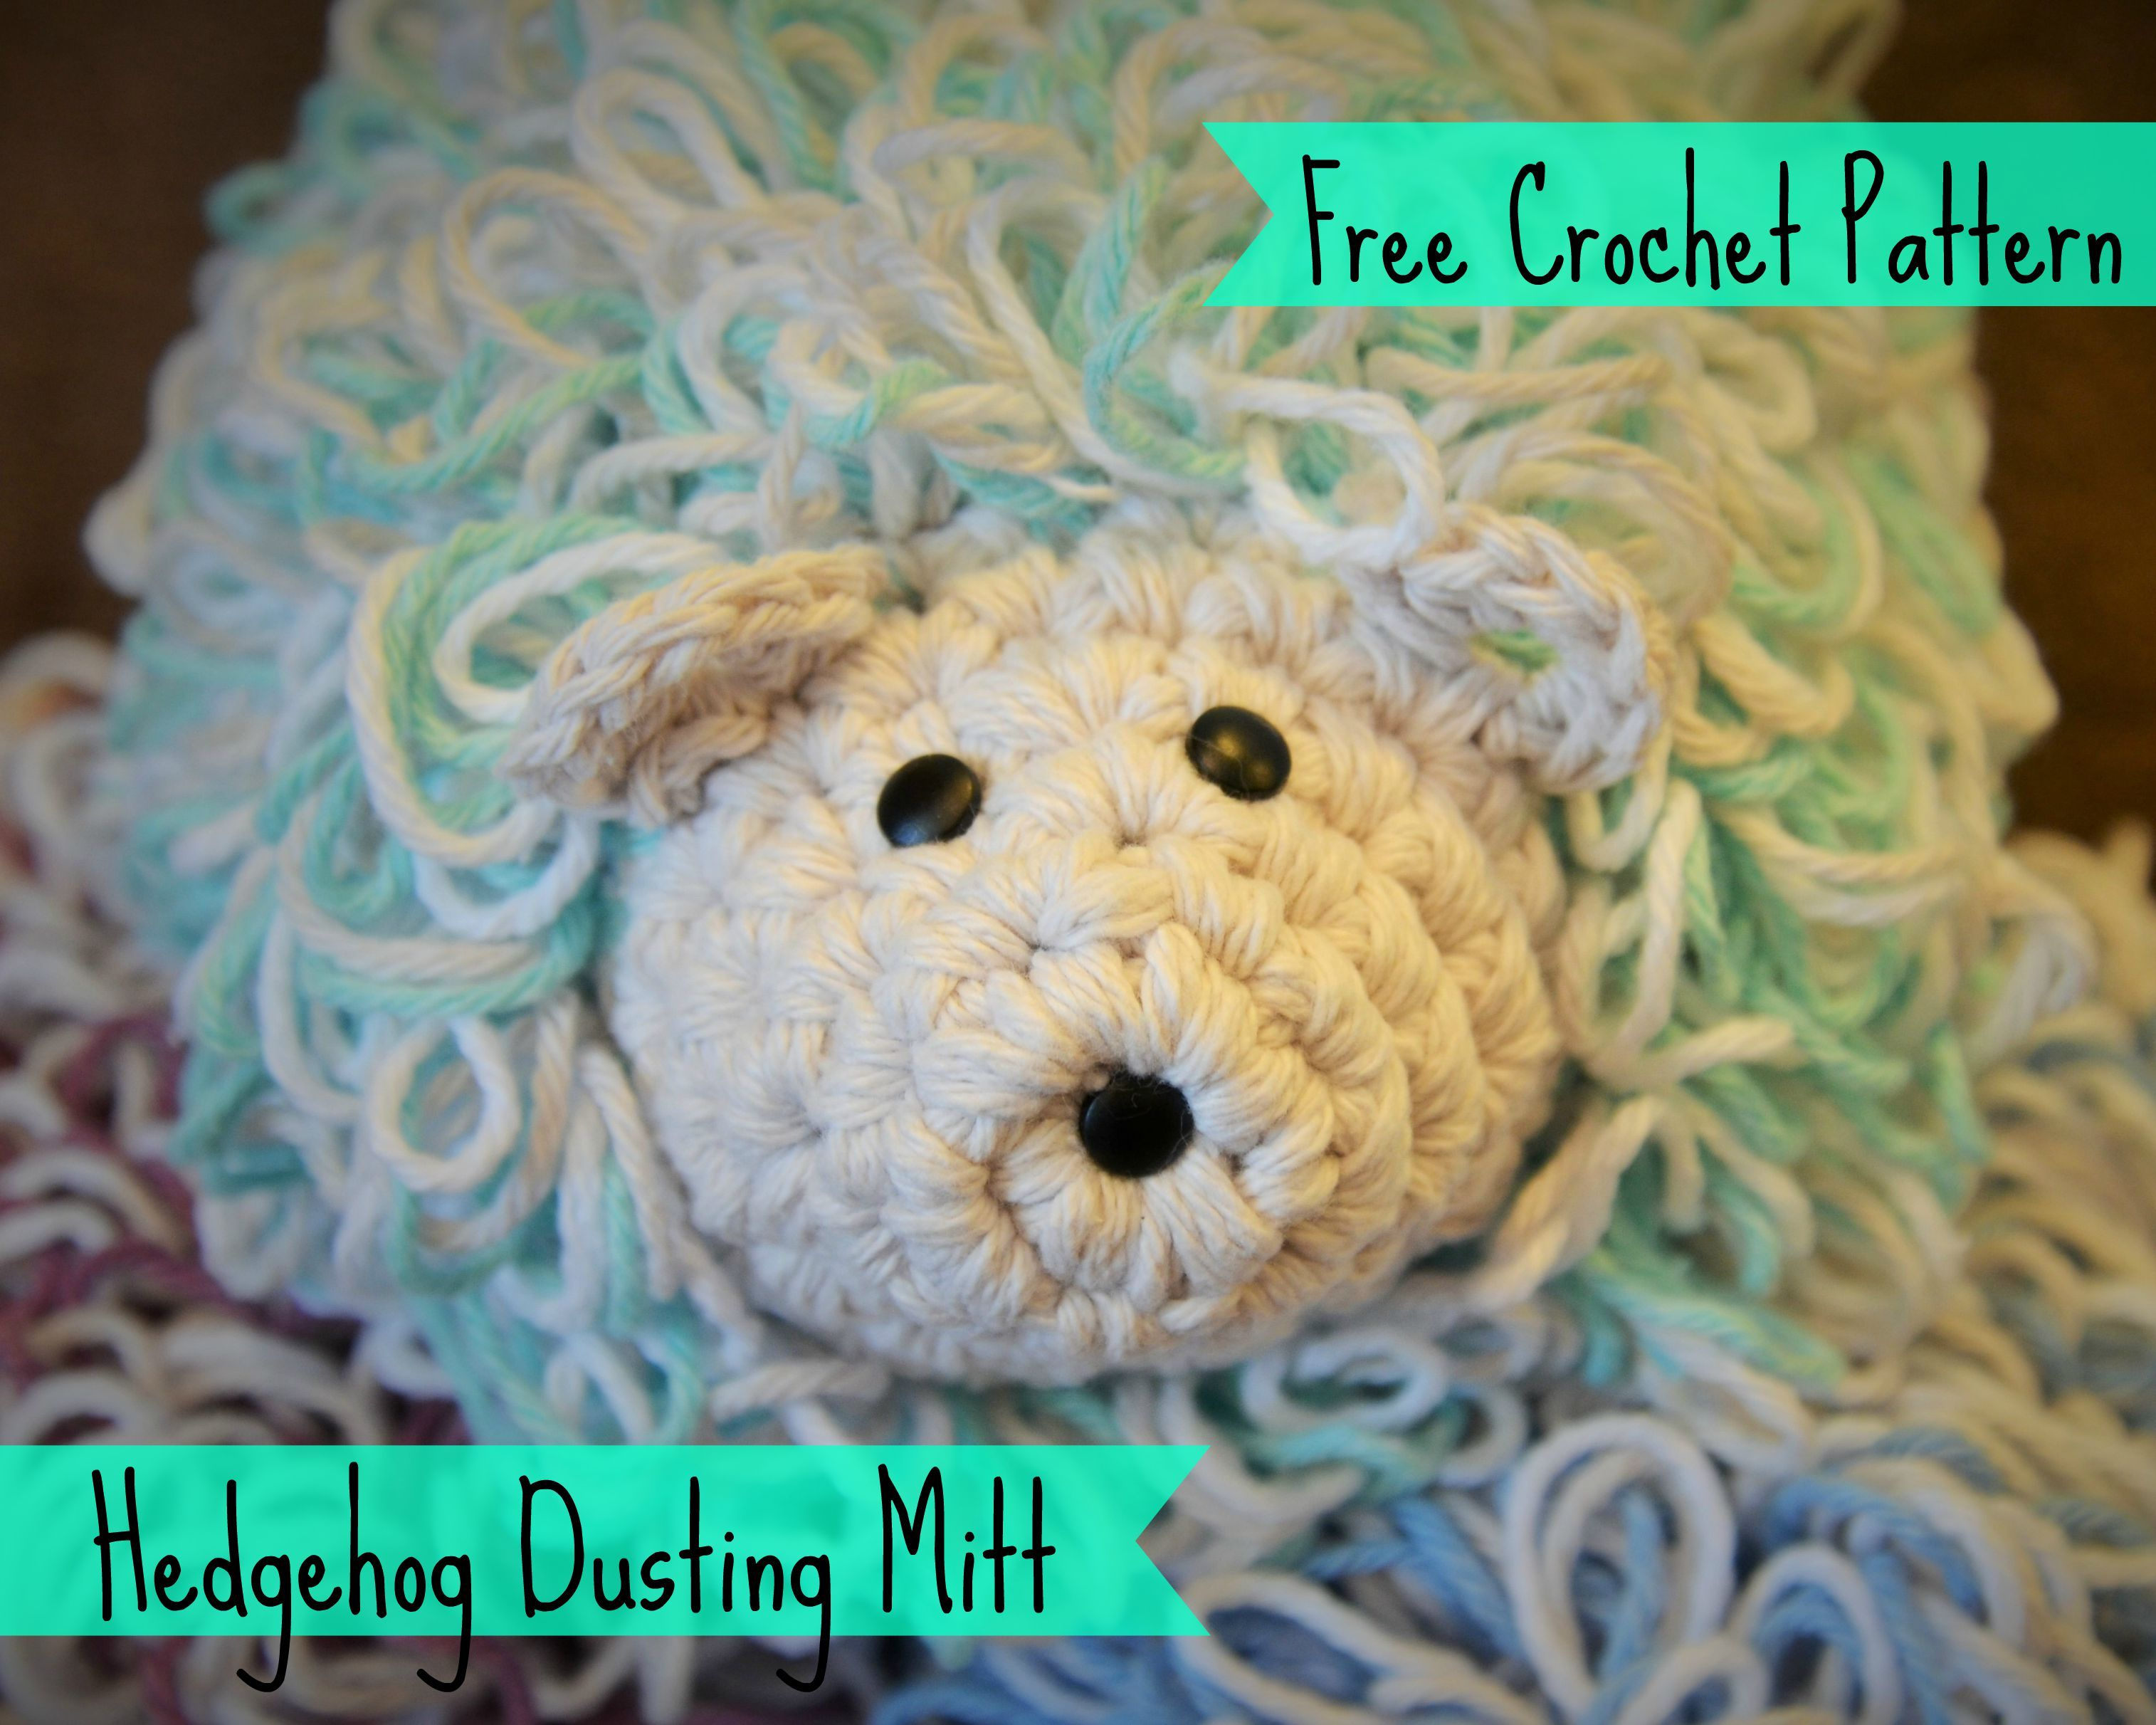 Hedgehog dusting mitt free pattern from fivetoninecreations free crochet pattern for an adorable dusting mitt worked with single crochet and loop stitches great for an intermediate crochet project bankloansurffo Choice Image